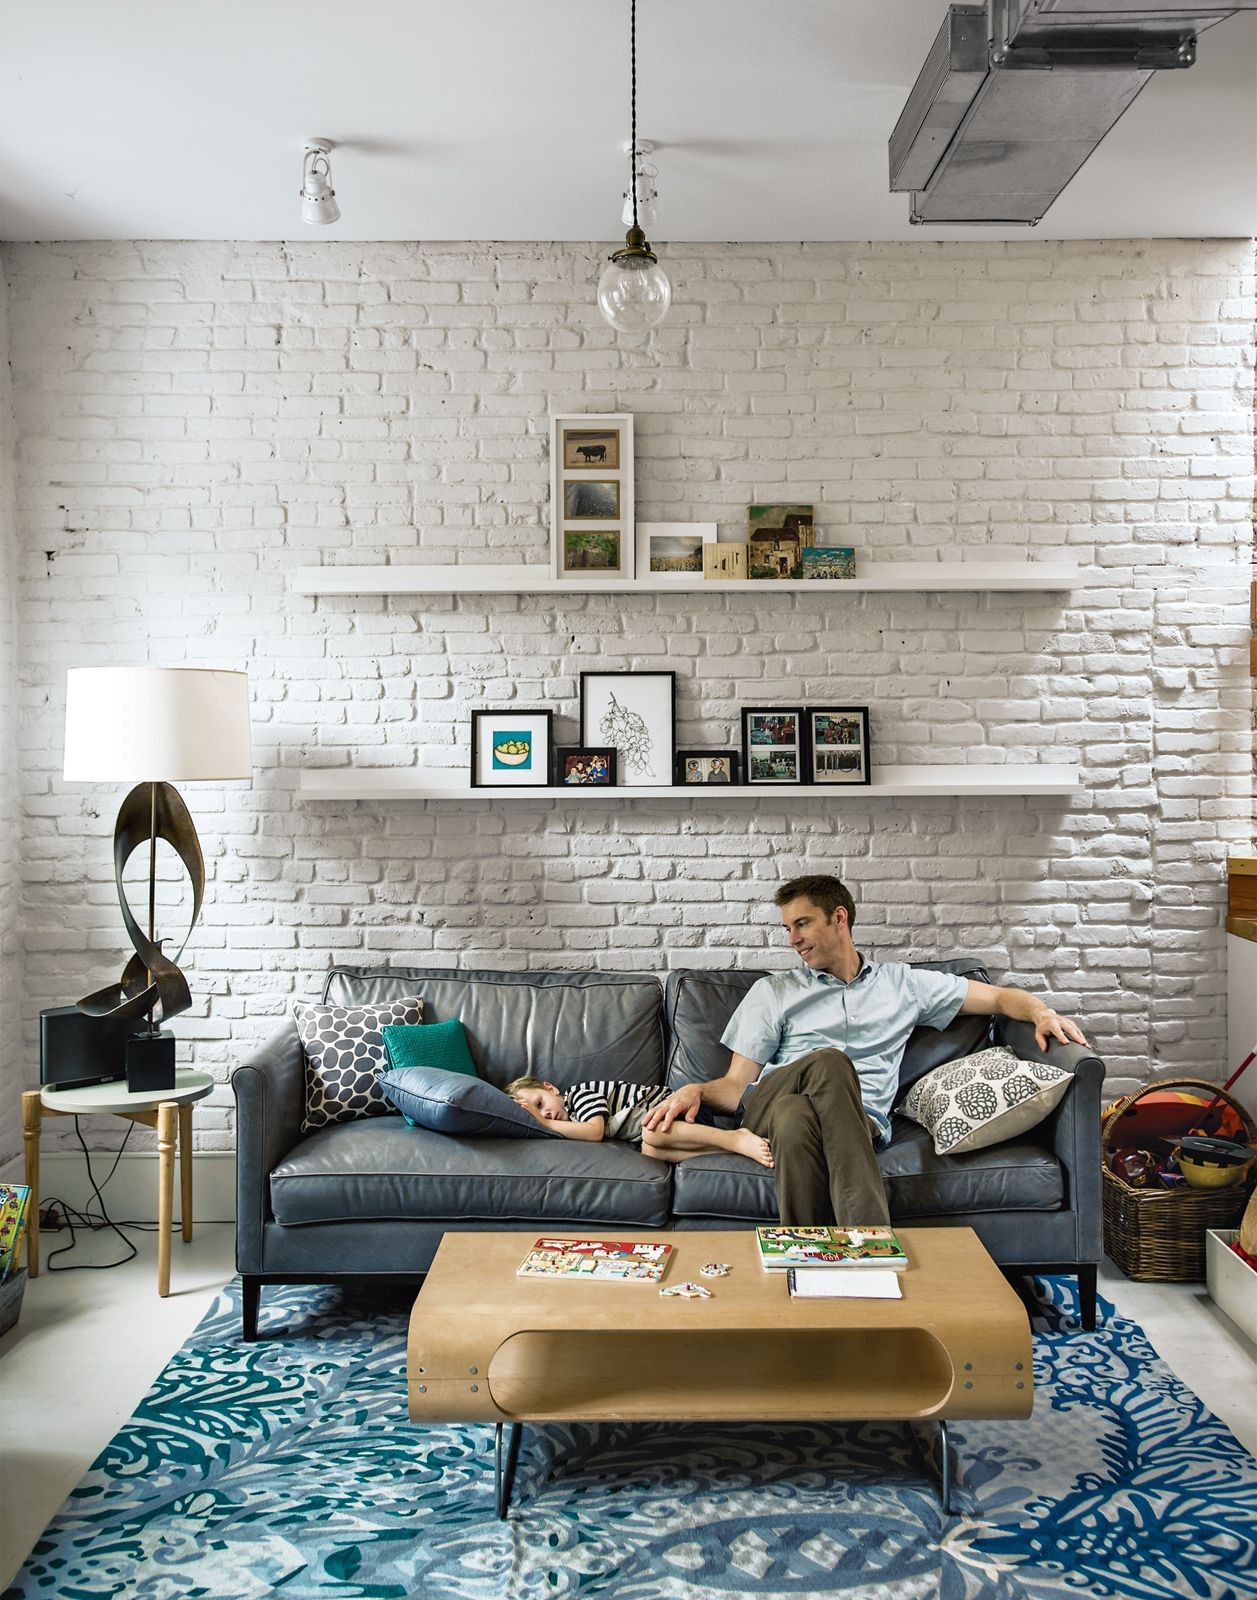 Living Room Brooklyn Slideshow A Budget Friendly Brownstone Renovation In Brooklyn